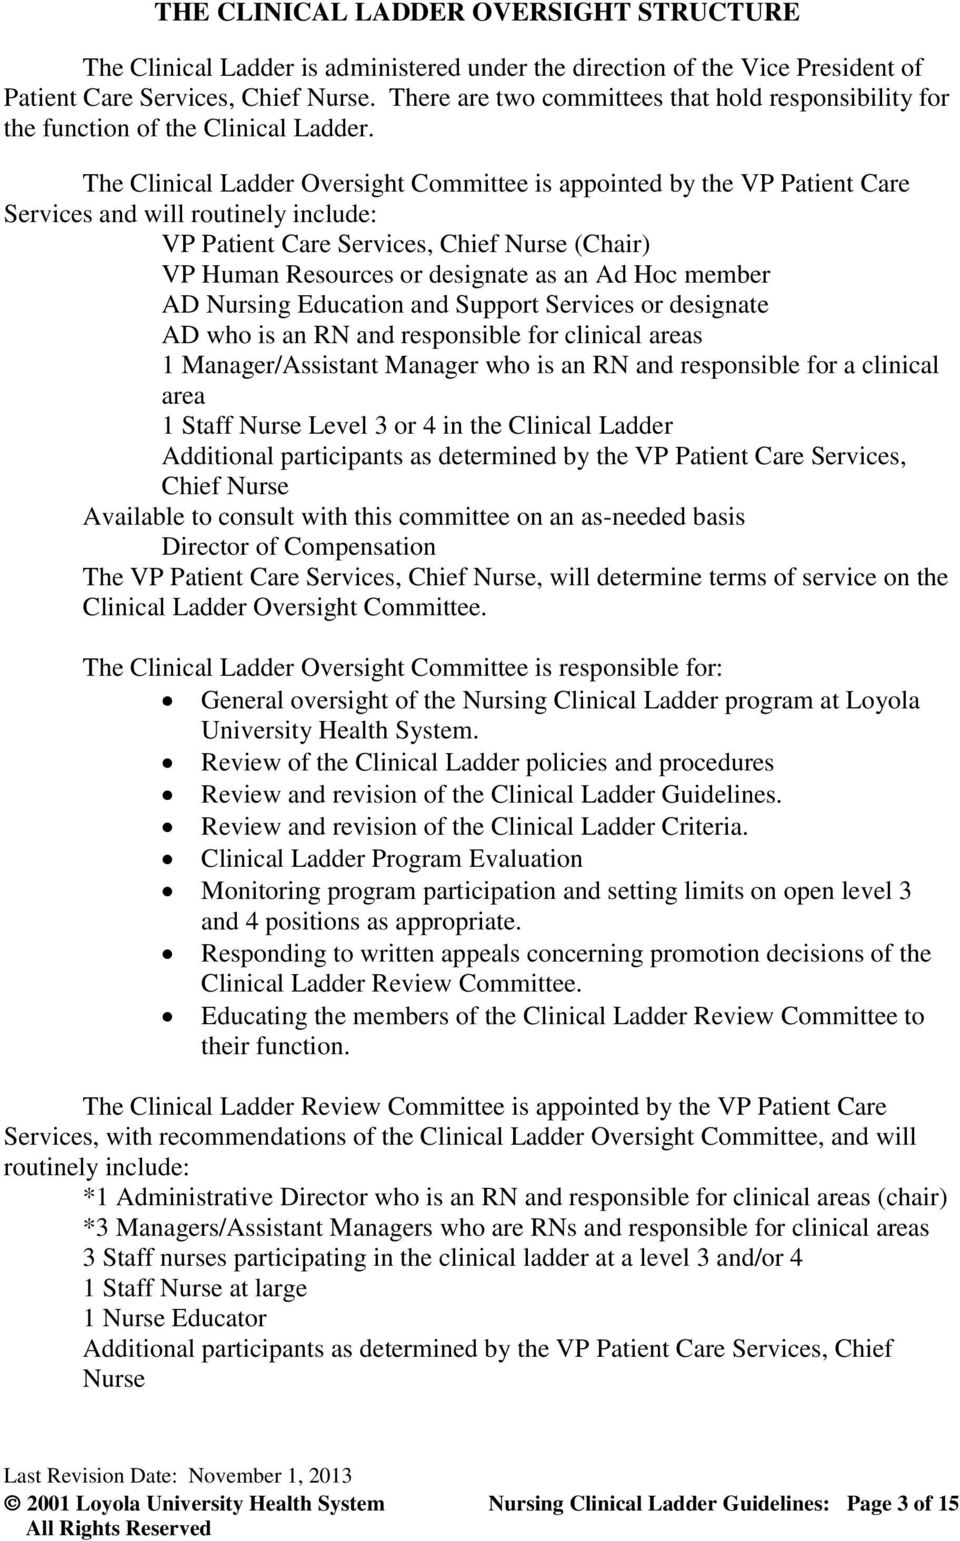 The Clinical Ladder Oversight Committee is appointed by the VP Patient Care Services and will routinely include: VP Patient Care Services, Chief Nurse (Chair) VP Human Resources or designate as an Ad